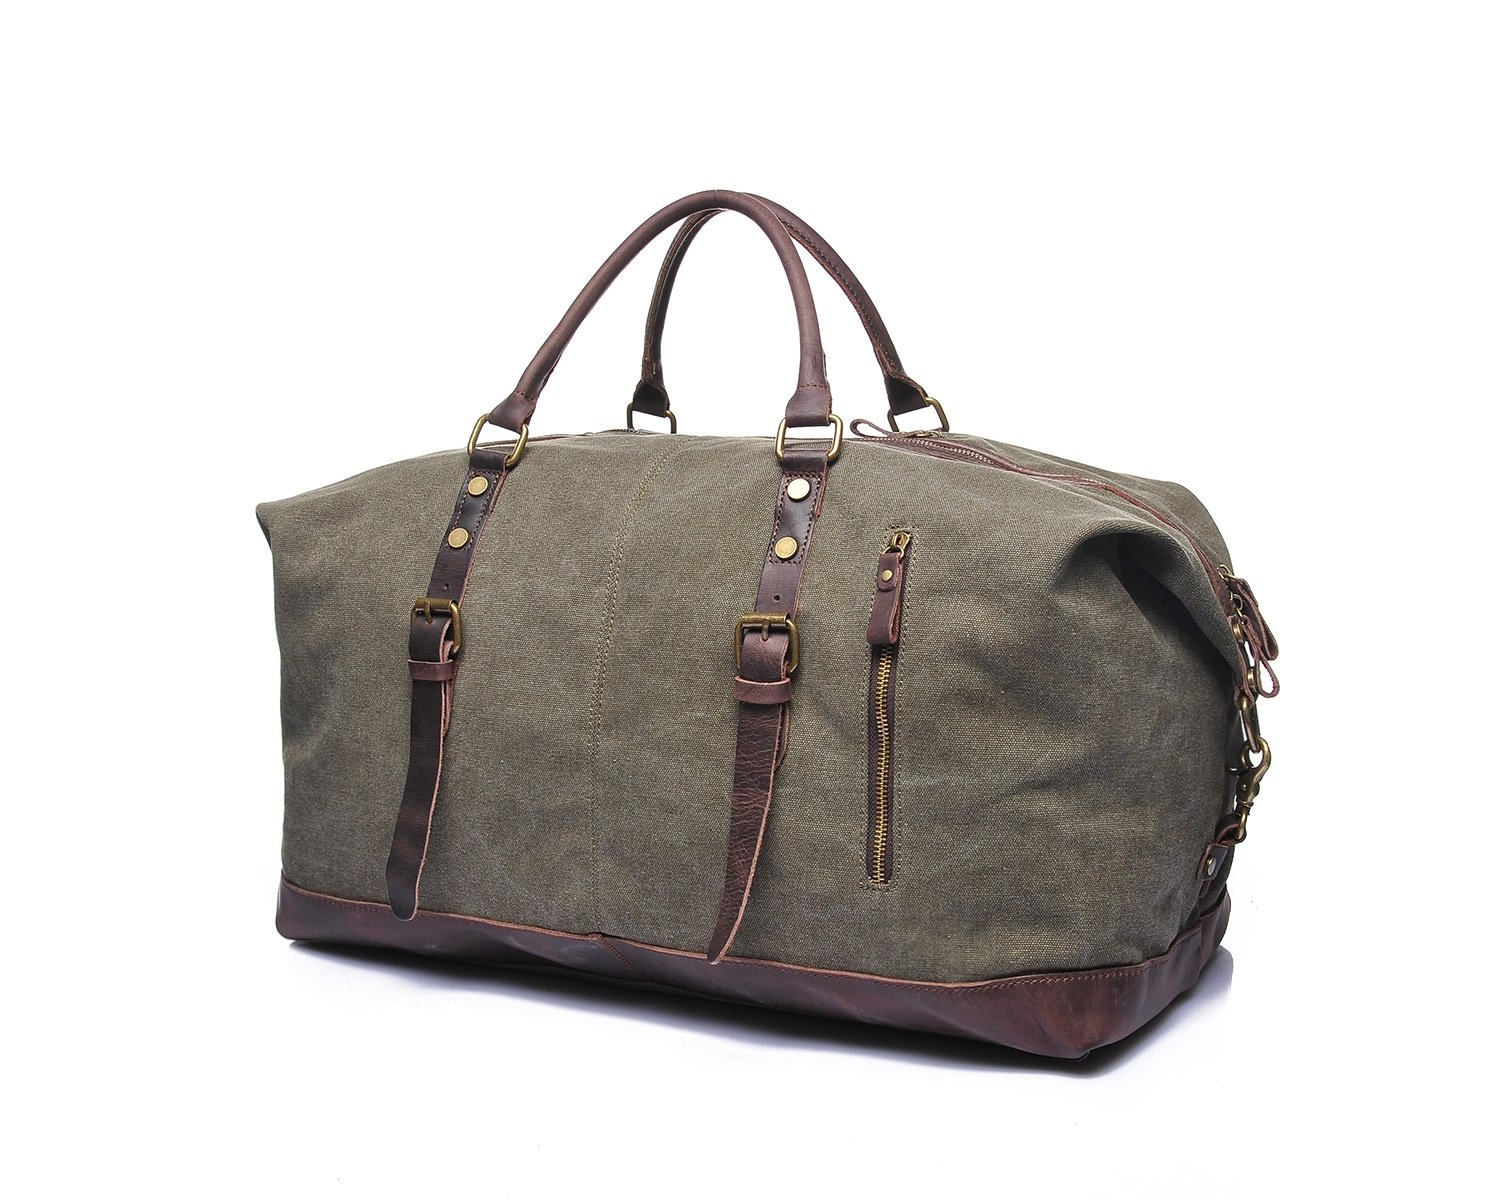 DAYIYANG Special Design Mens Retro Travel Bags Crazy Horseskin Embroidery Shoulder Bags Bags Canvas Bags Color : Brown, Size : L